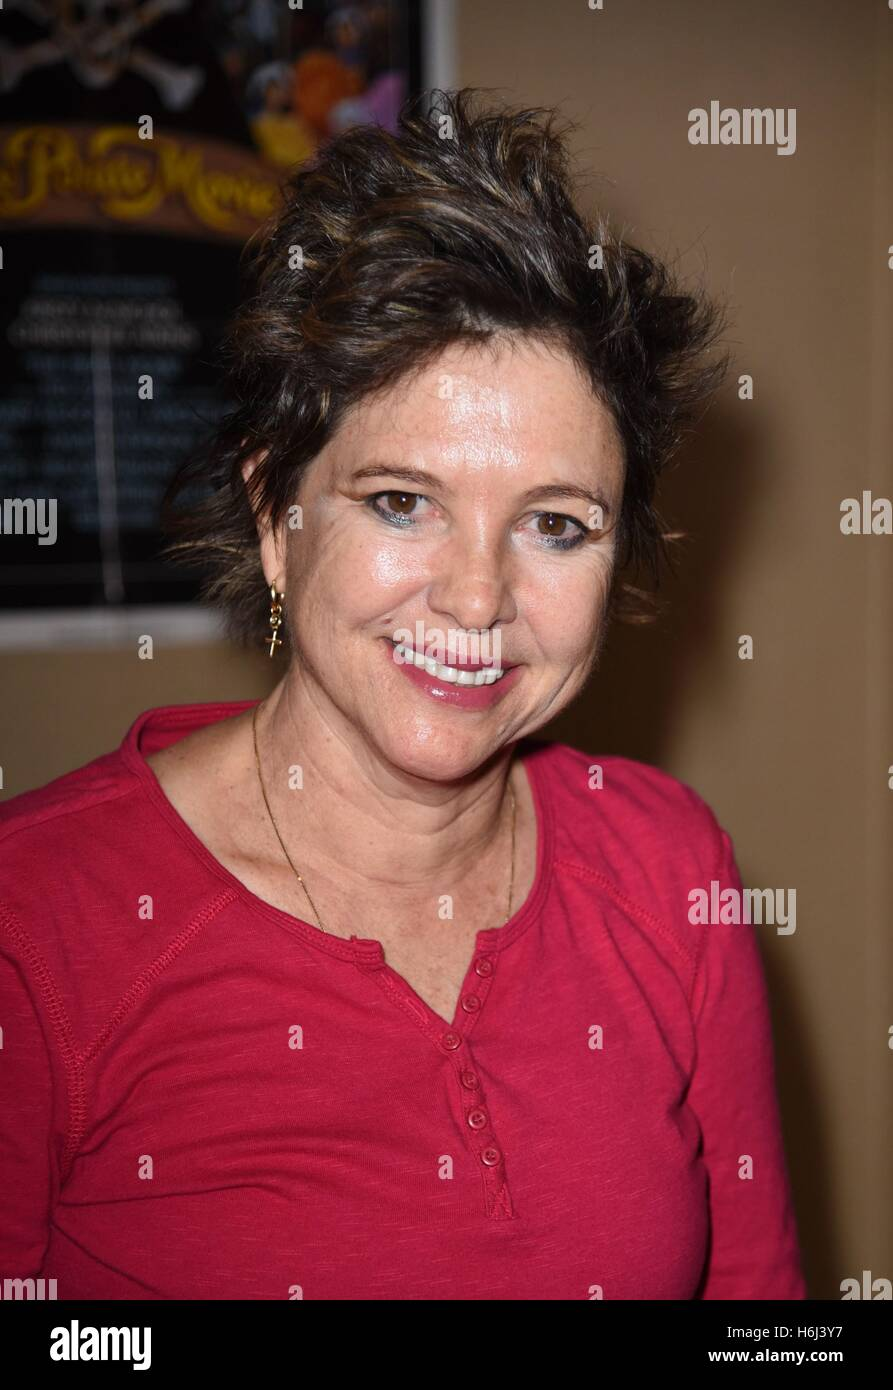 Forum on this topic: Louisa Krause, kristy-mcnichol/